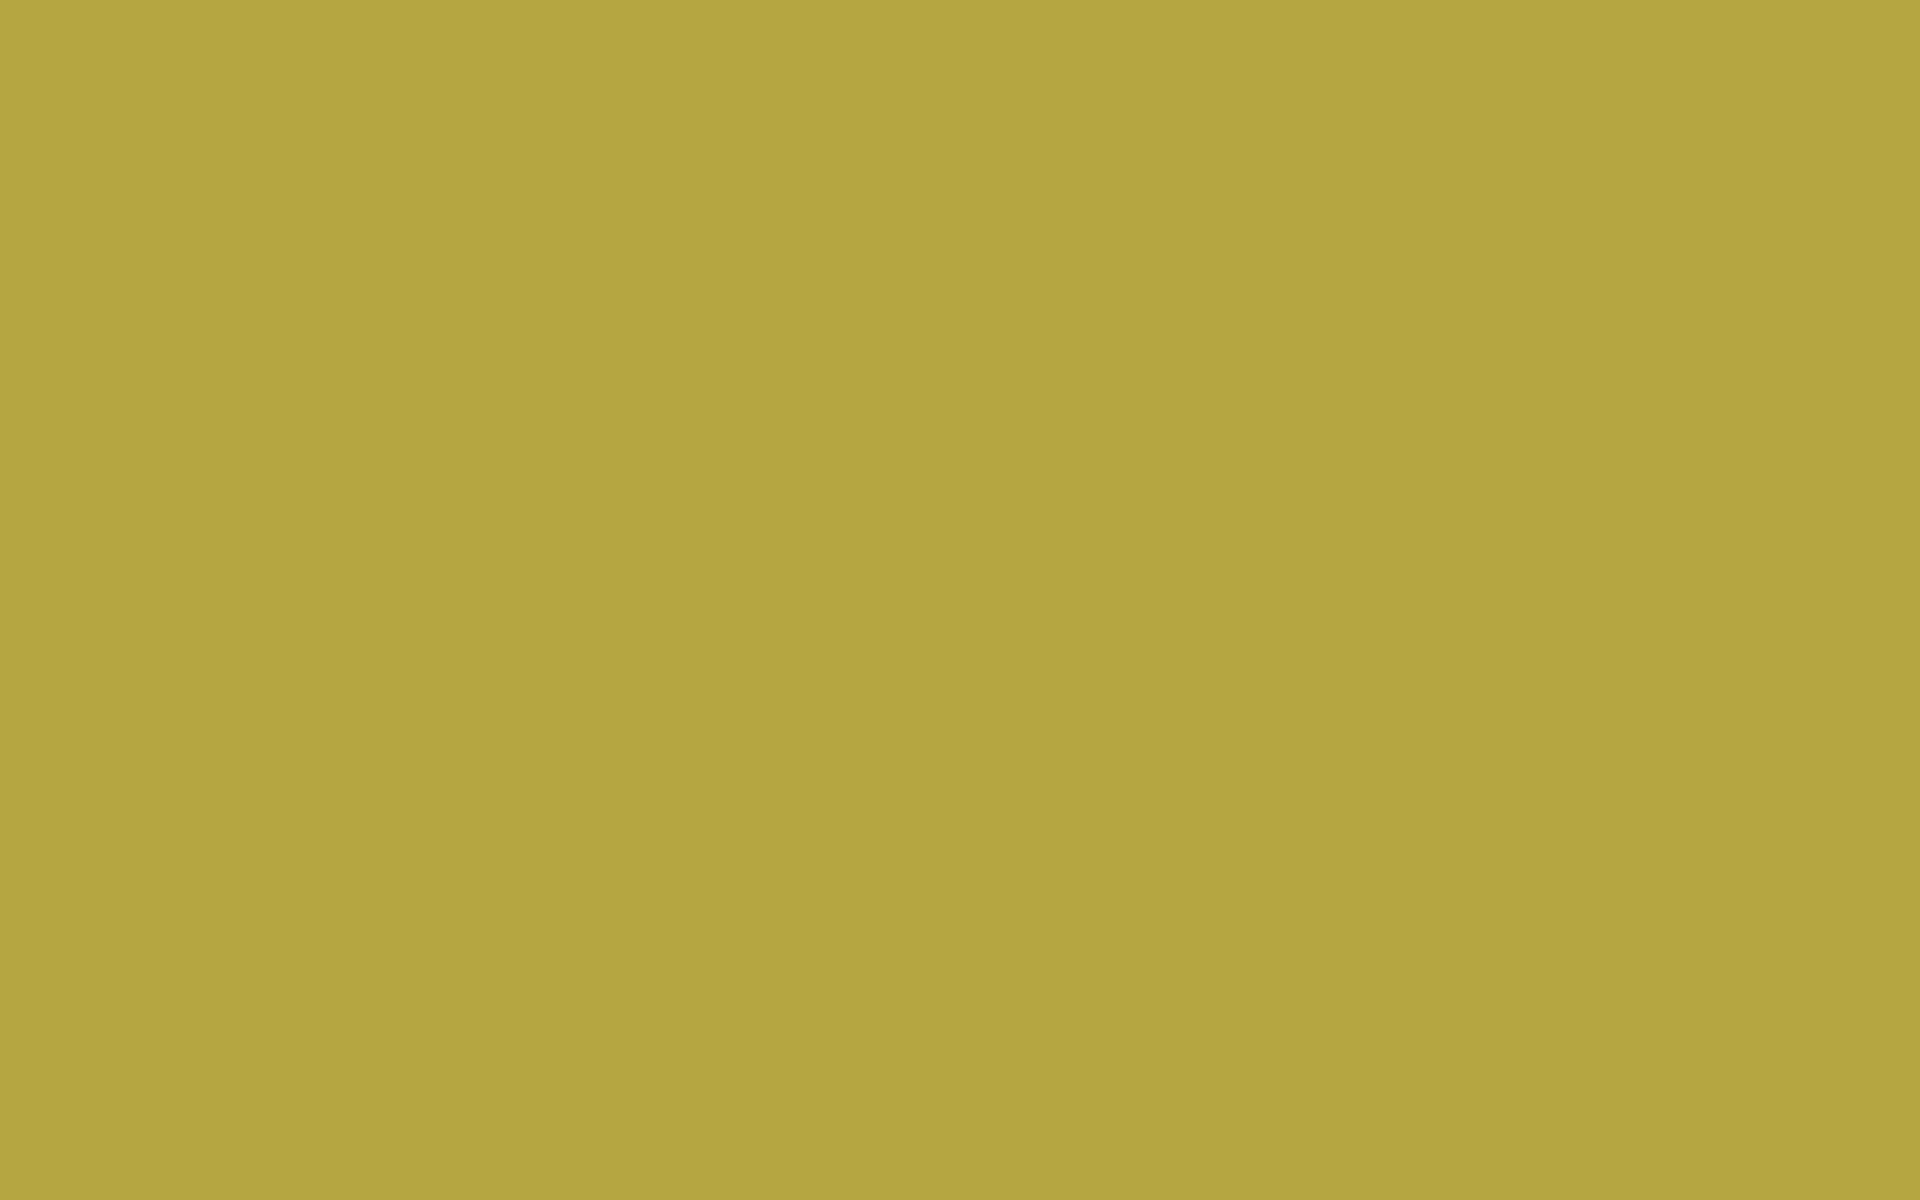 1920x1200 Brass Solid Color Background